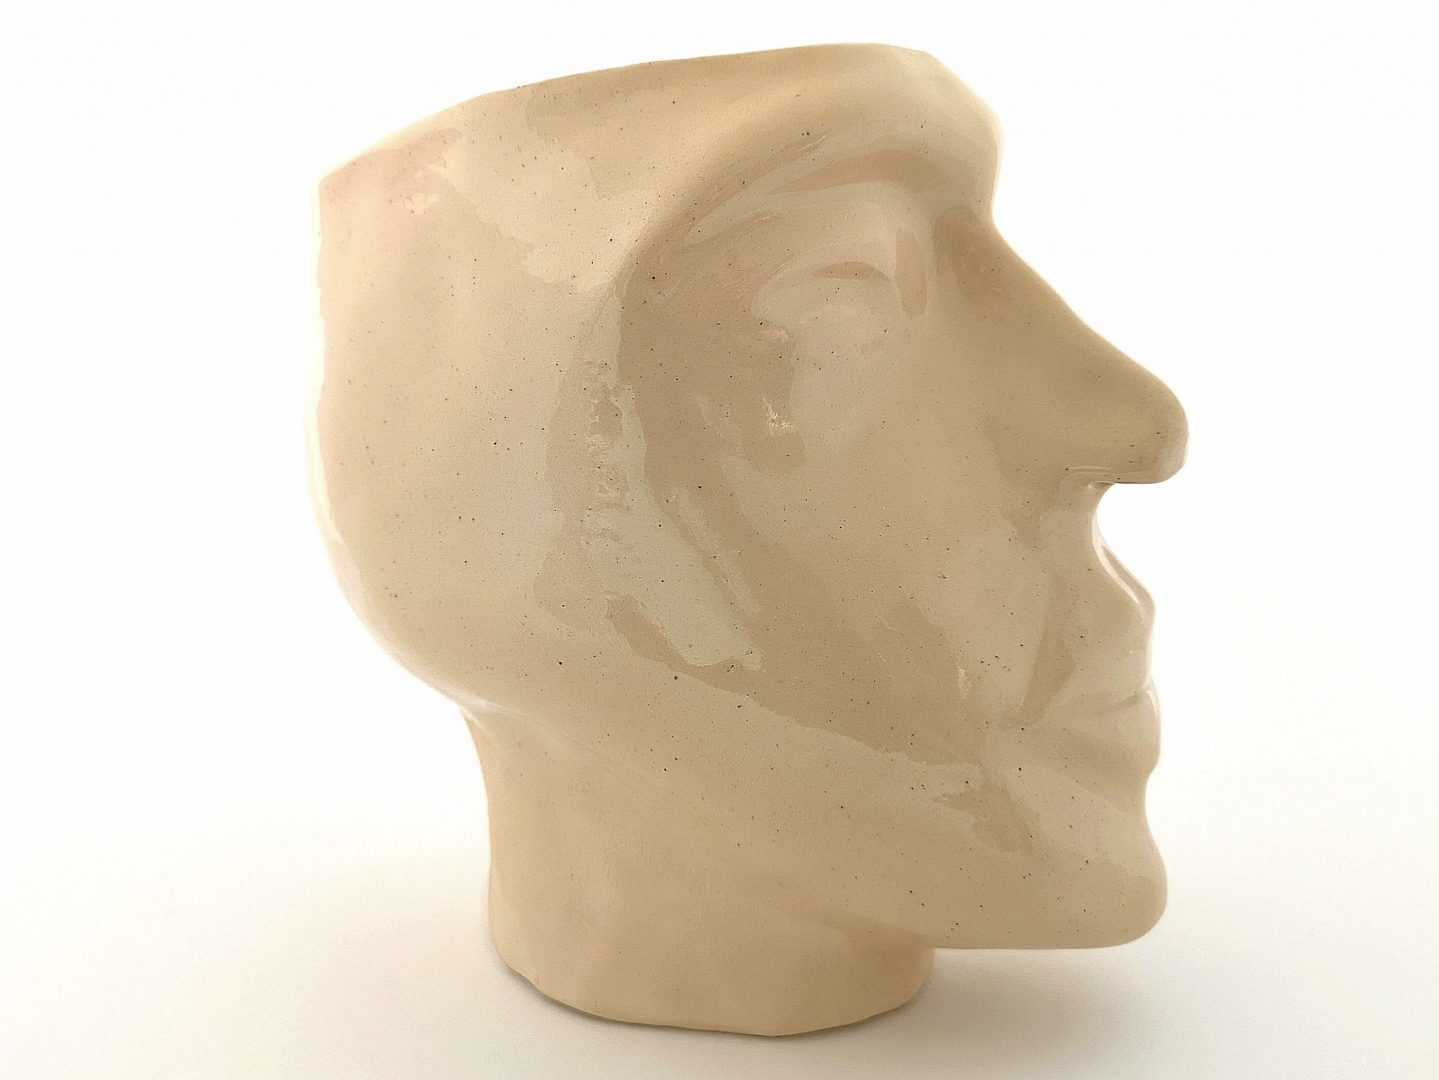 A ceramic sculpture of a head, handmade ceramic sculpture, head sculpture AAP1